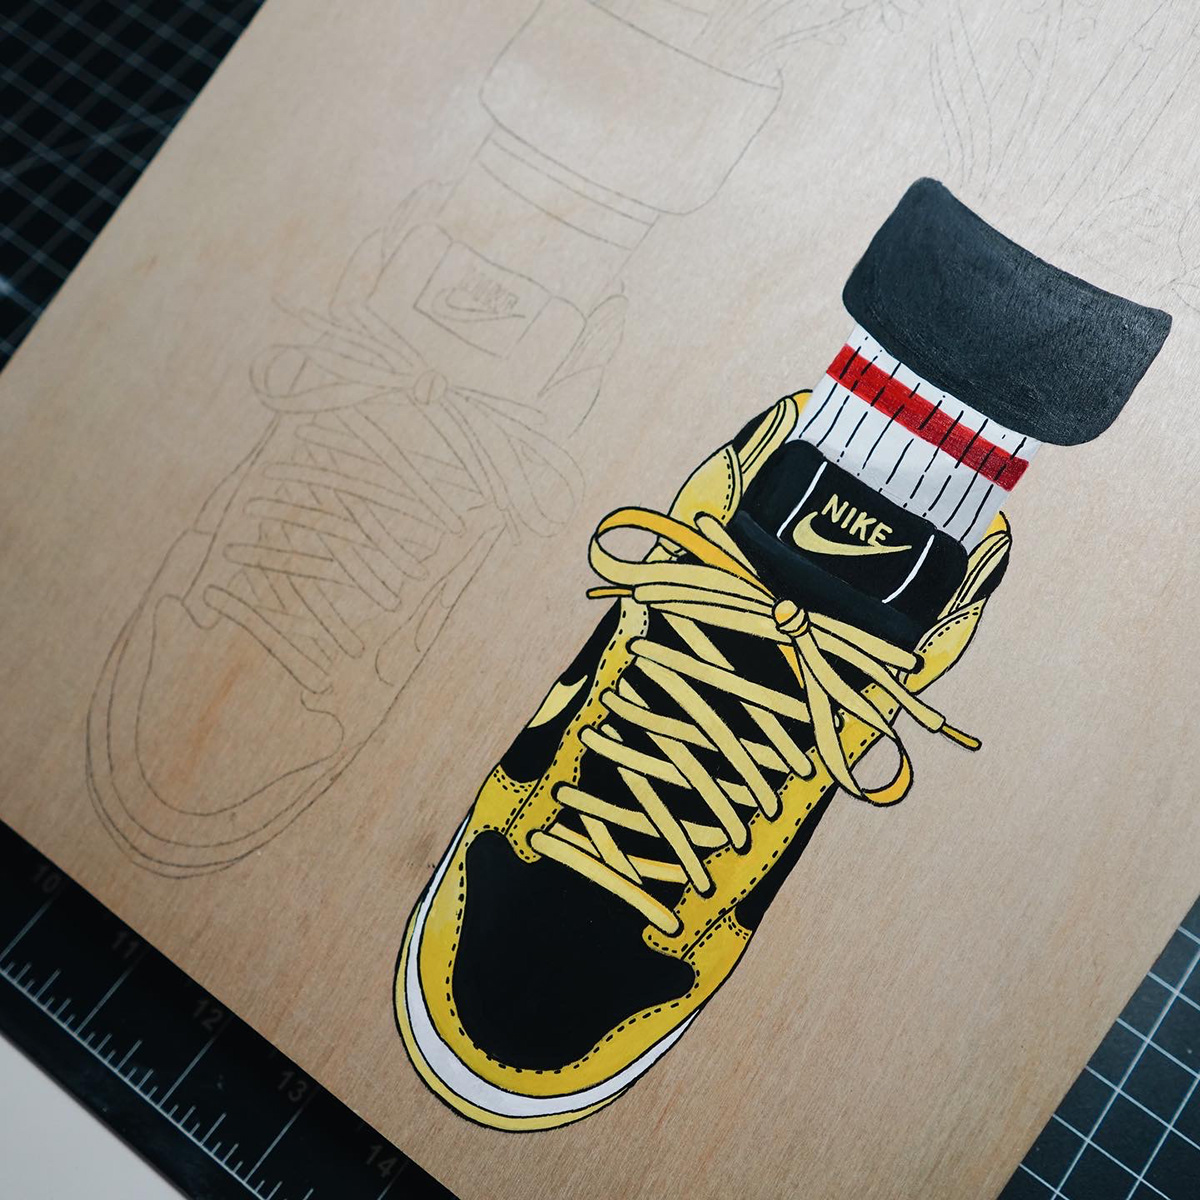 acrylic painting canvas canvas painting dunk high heyemilydee painting   sneaker painting